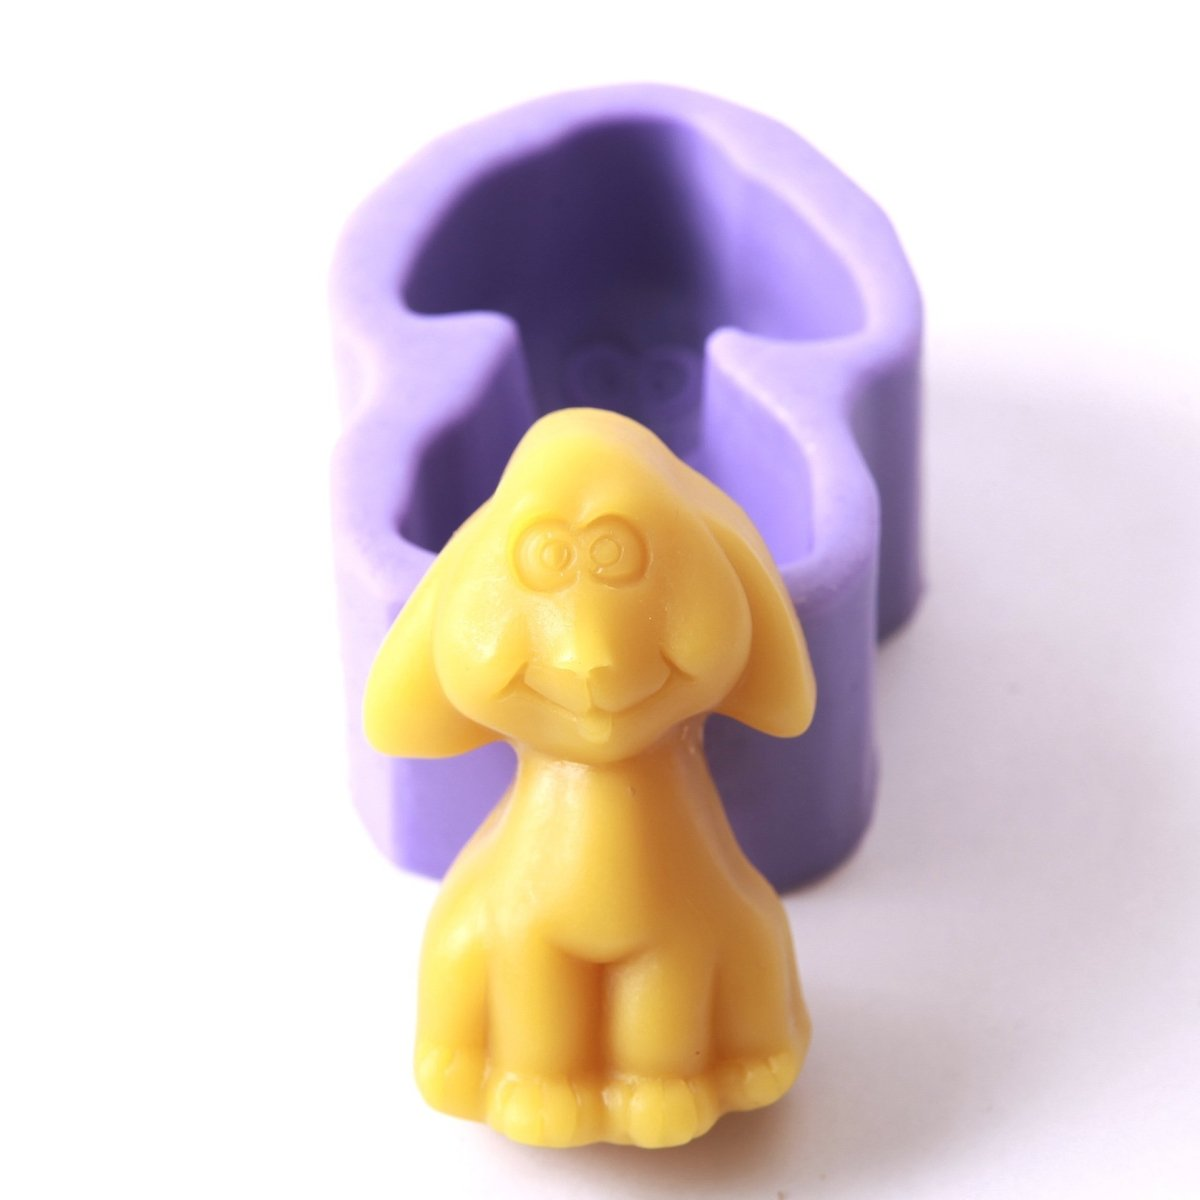 Cartoon Dog Silicone Soap Mould H0051 - Mystic Moments UK